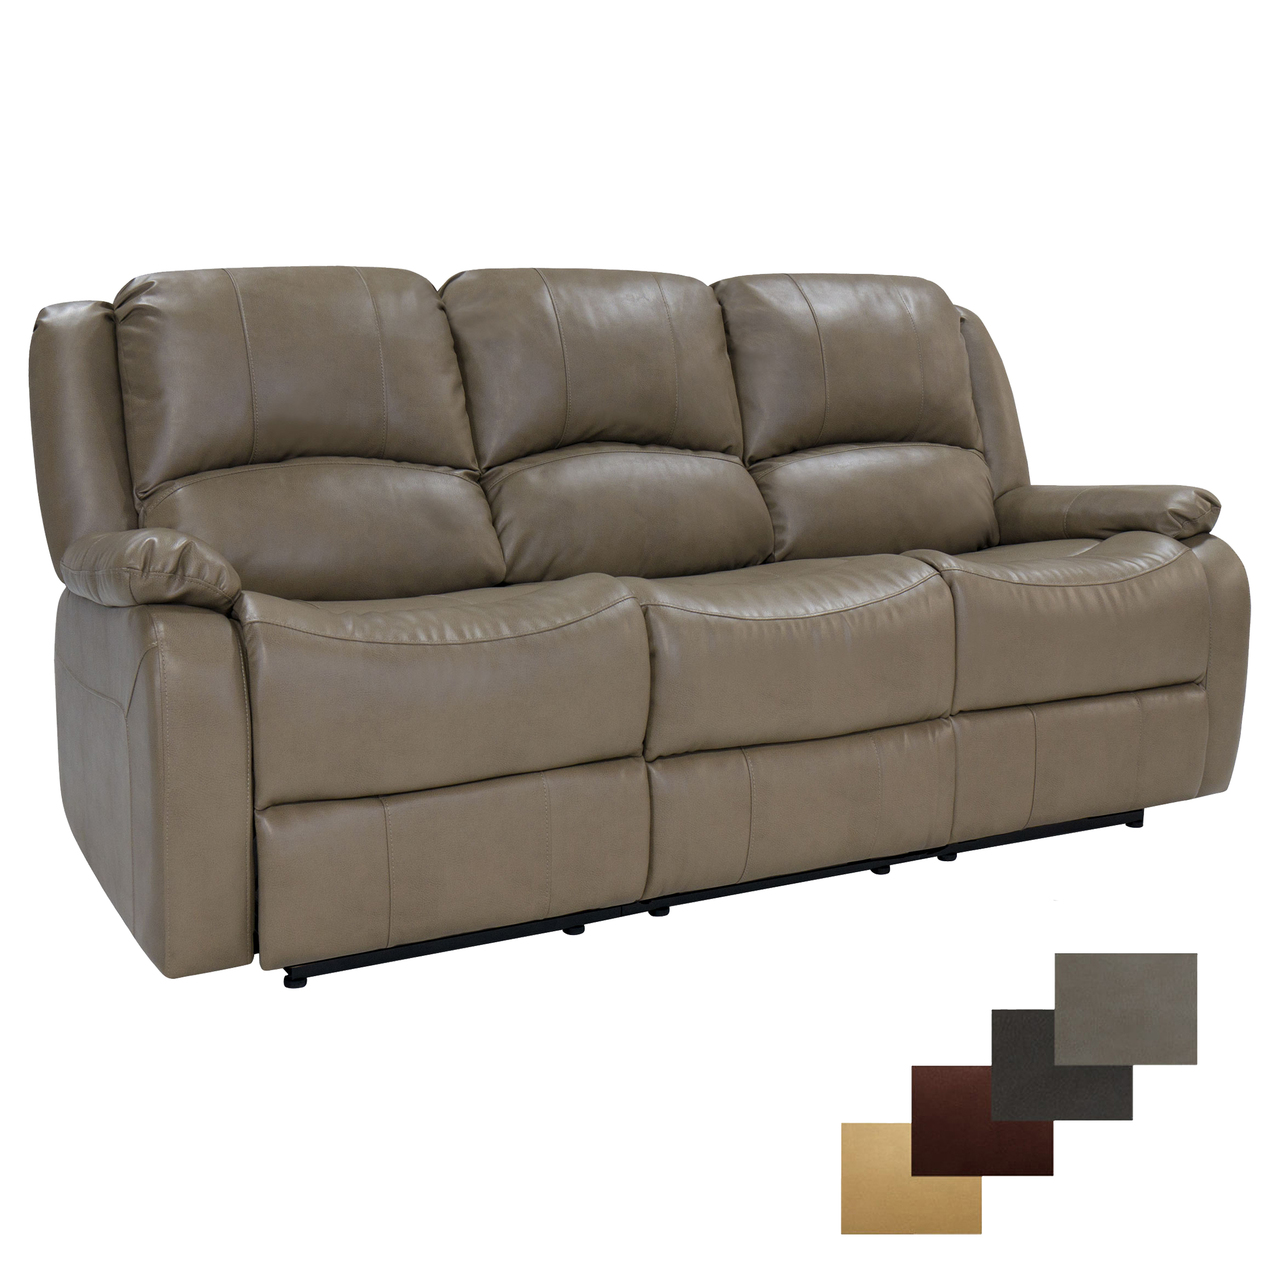 Furnitures Recpro Charles 80 Triple Rv Wall Hugger Recliner Sofa W